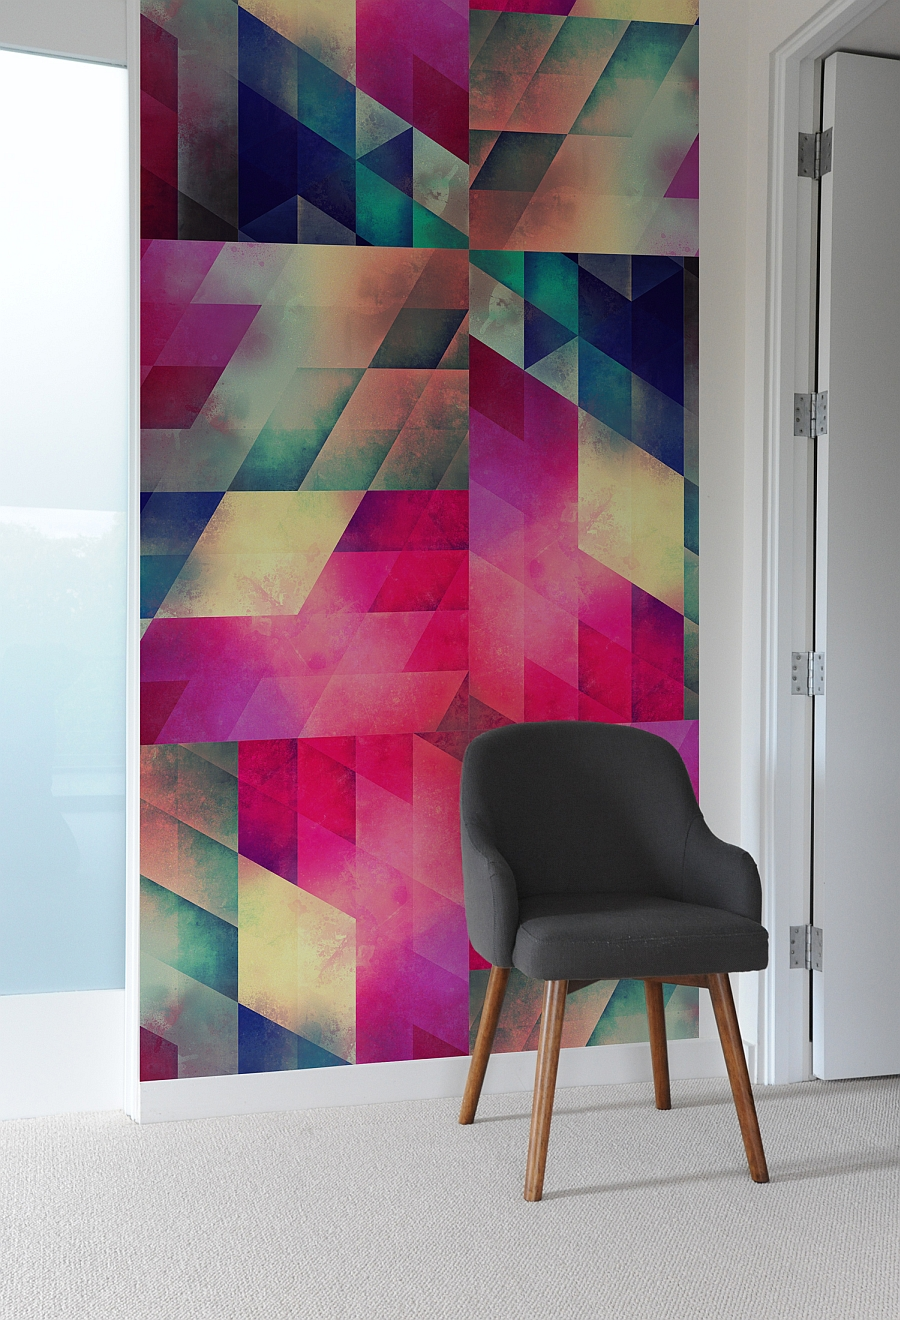 Colorful geometric-patterned wall tiles from Bilk